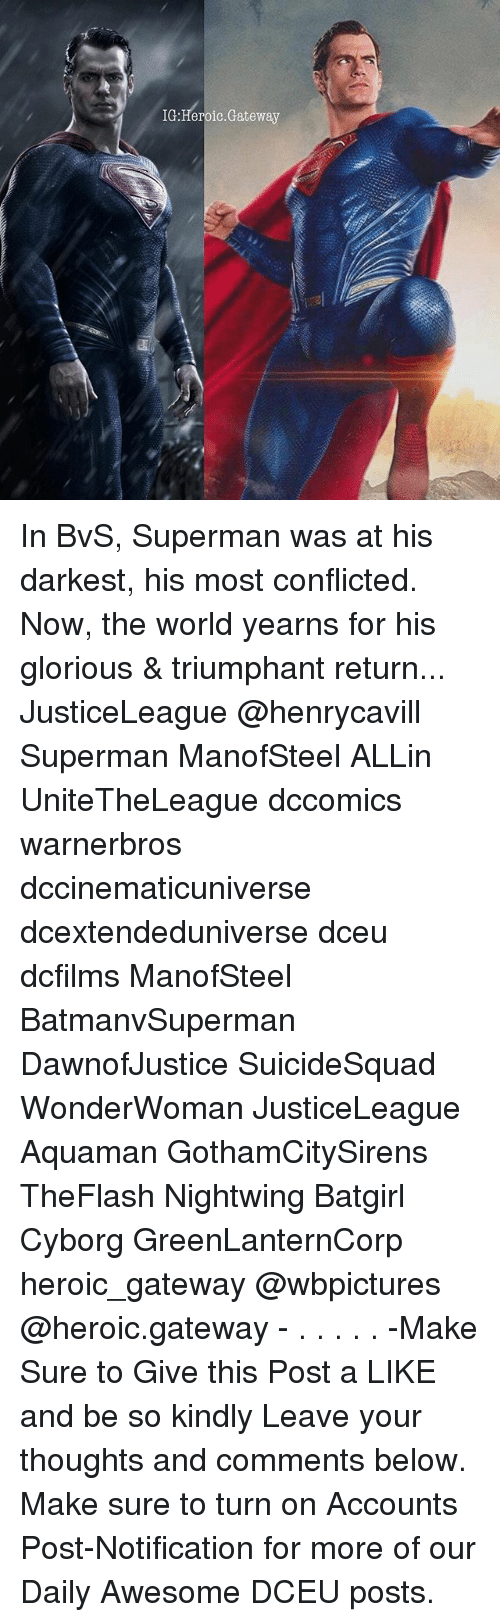 Memes, Superman, and Gateway: IG:Heroic.Gateway In BvS, Superman was at his darkest, his most conflicted. Now, the world yearns for his glorious & triumphant return... JusticeLeague @henrycavill Superman ManofSteel ALLin UniteTheLeague dccomics warnerbros dccinematicuniverse dcextendeduniverse dceu dcfilms ManofSteel BatmanvSuperman DawnofJustice SuicideSquad WonderWoman JusticeLeague Aquaman GothamCitySirens TheFlash Nightwing Batgirl Cyborg GreenLanternCorp heroic_gateway @wbpictures @heroic.gateway - . . . . . -Make Sure to Give this Post a LIKE and be so kindly Leave your thoughts and comments below. Make sure to turn on Accounts Post-Notification for more of our Daily Awesome DCEU posts.